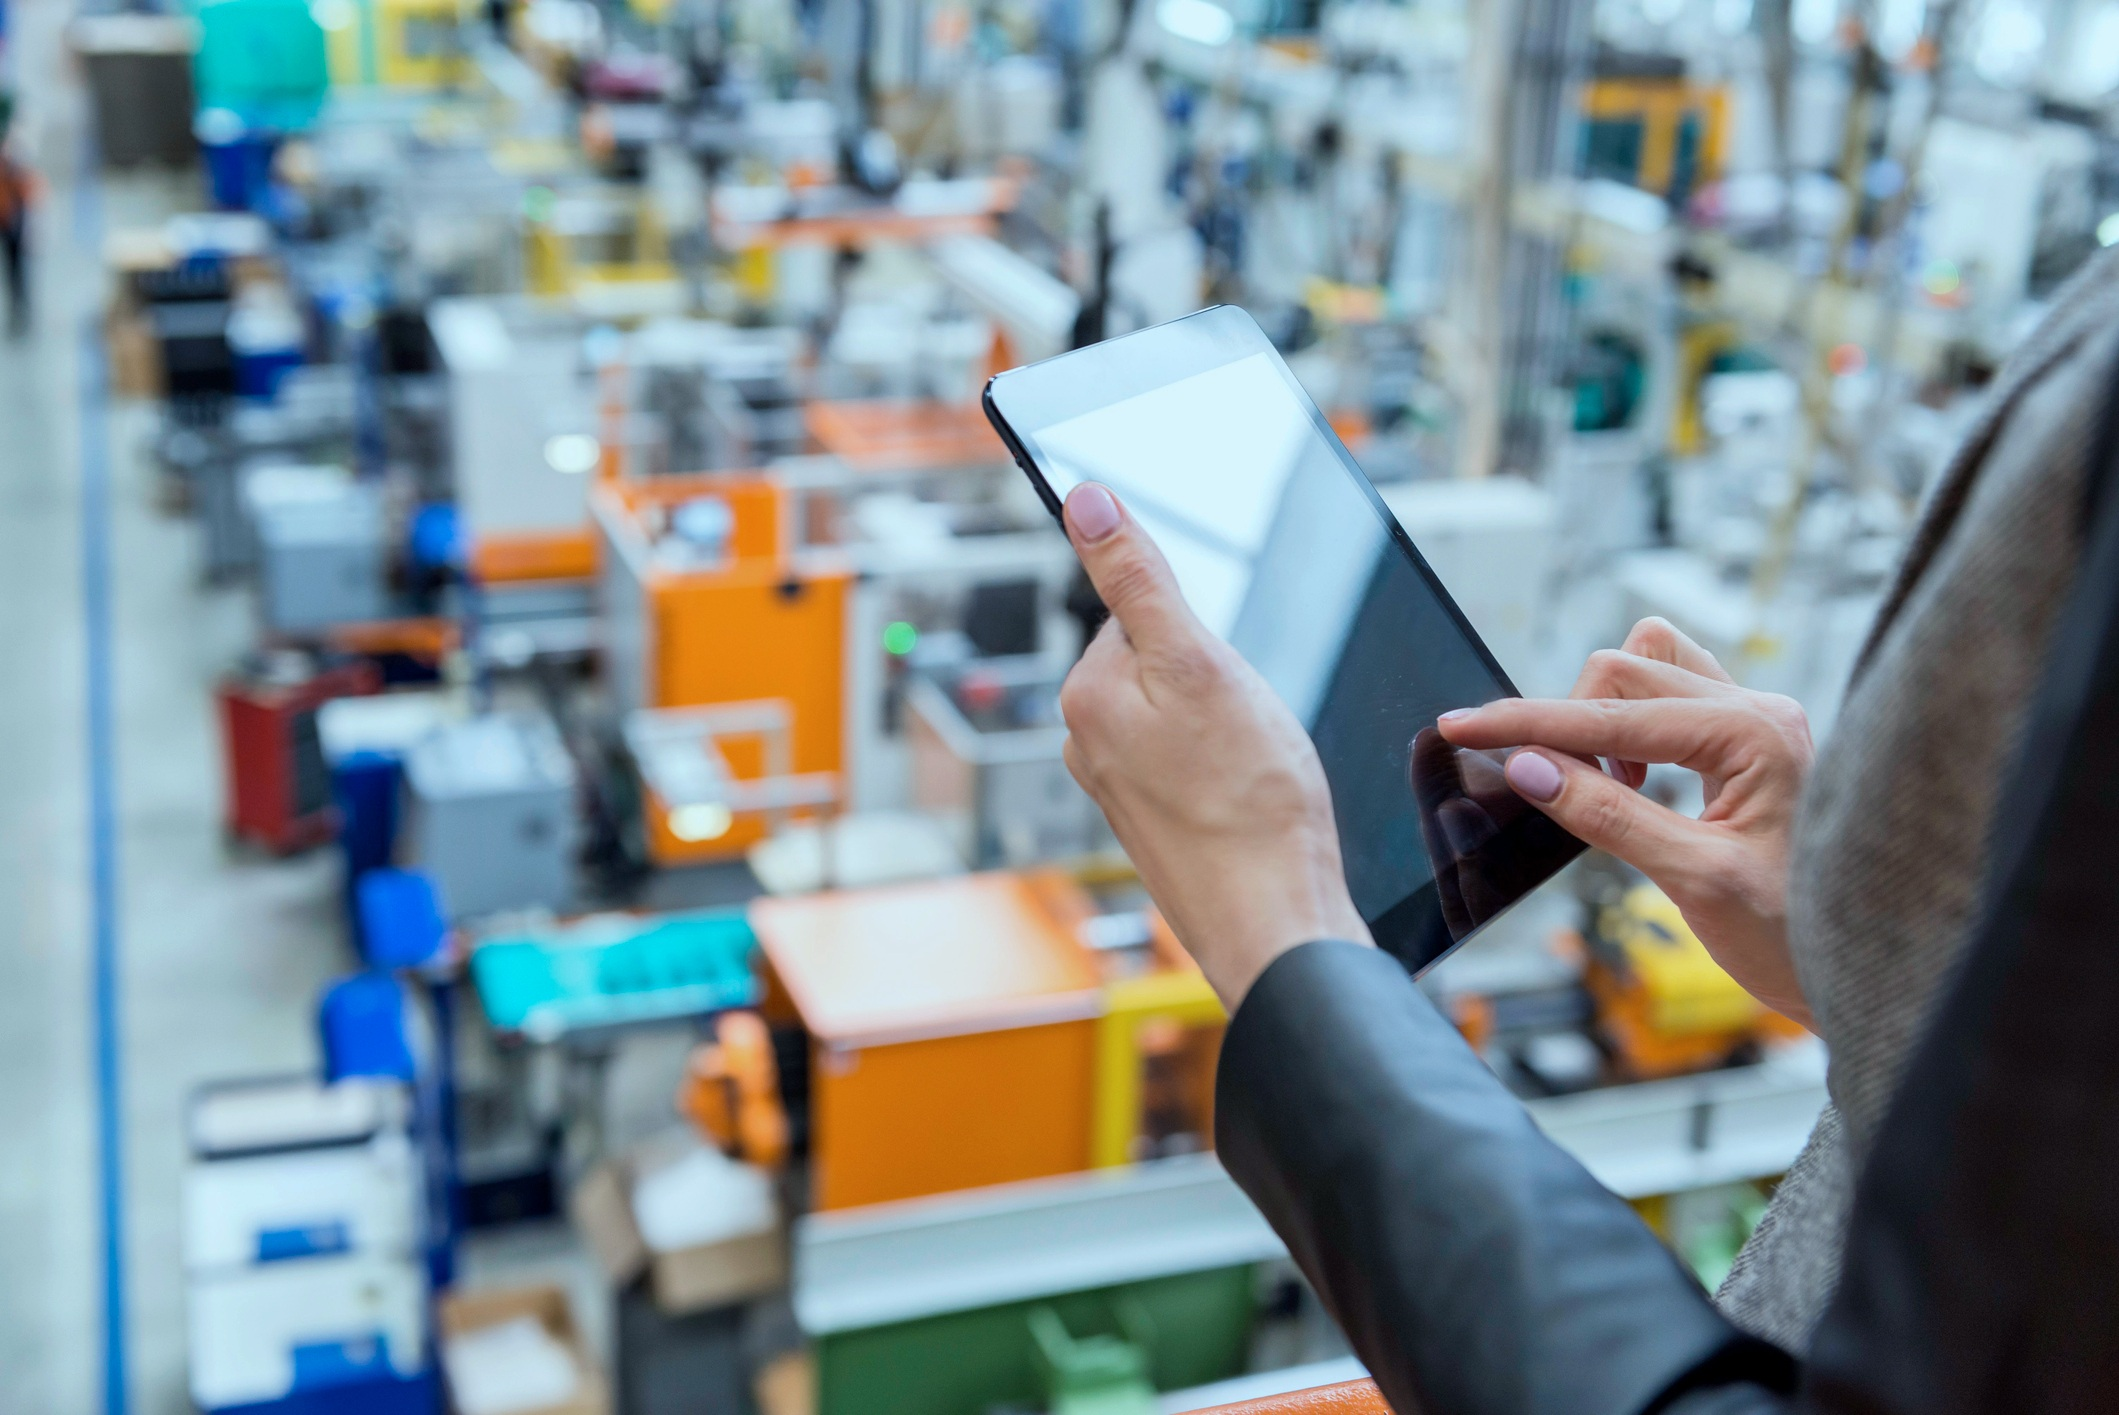 Using mobile devices is a key way to improve the accuracy and timeliness of data.